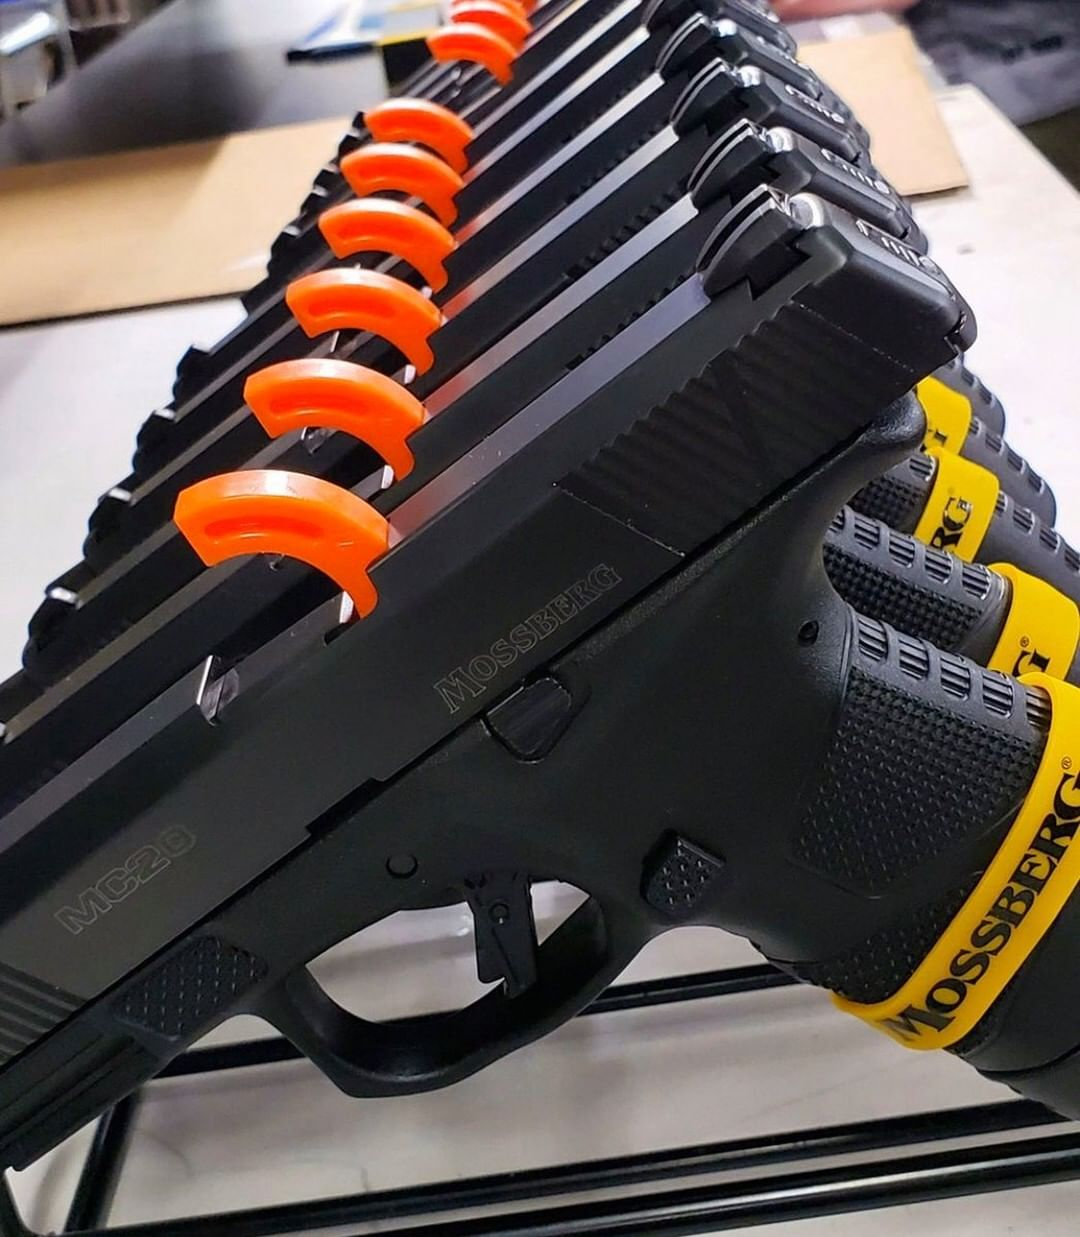 mossberg opens a new office